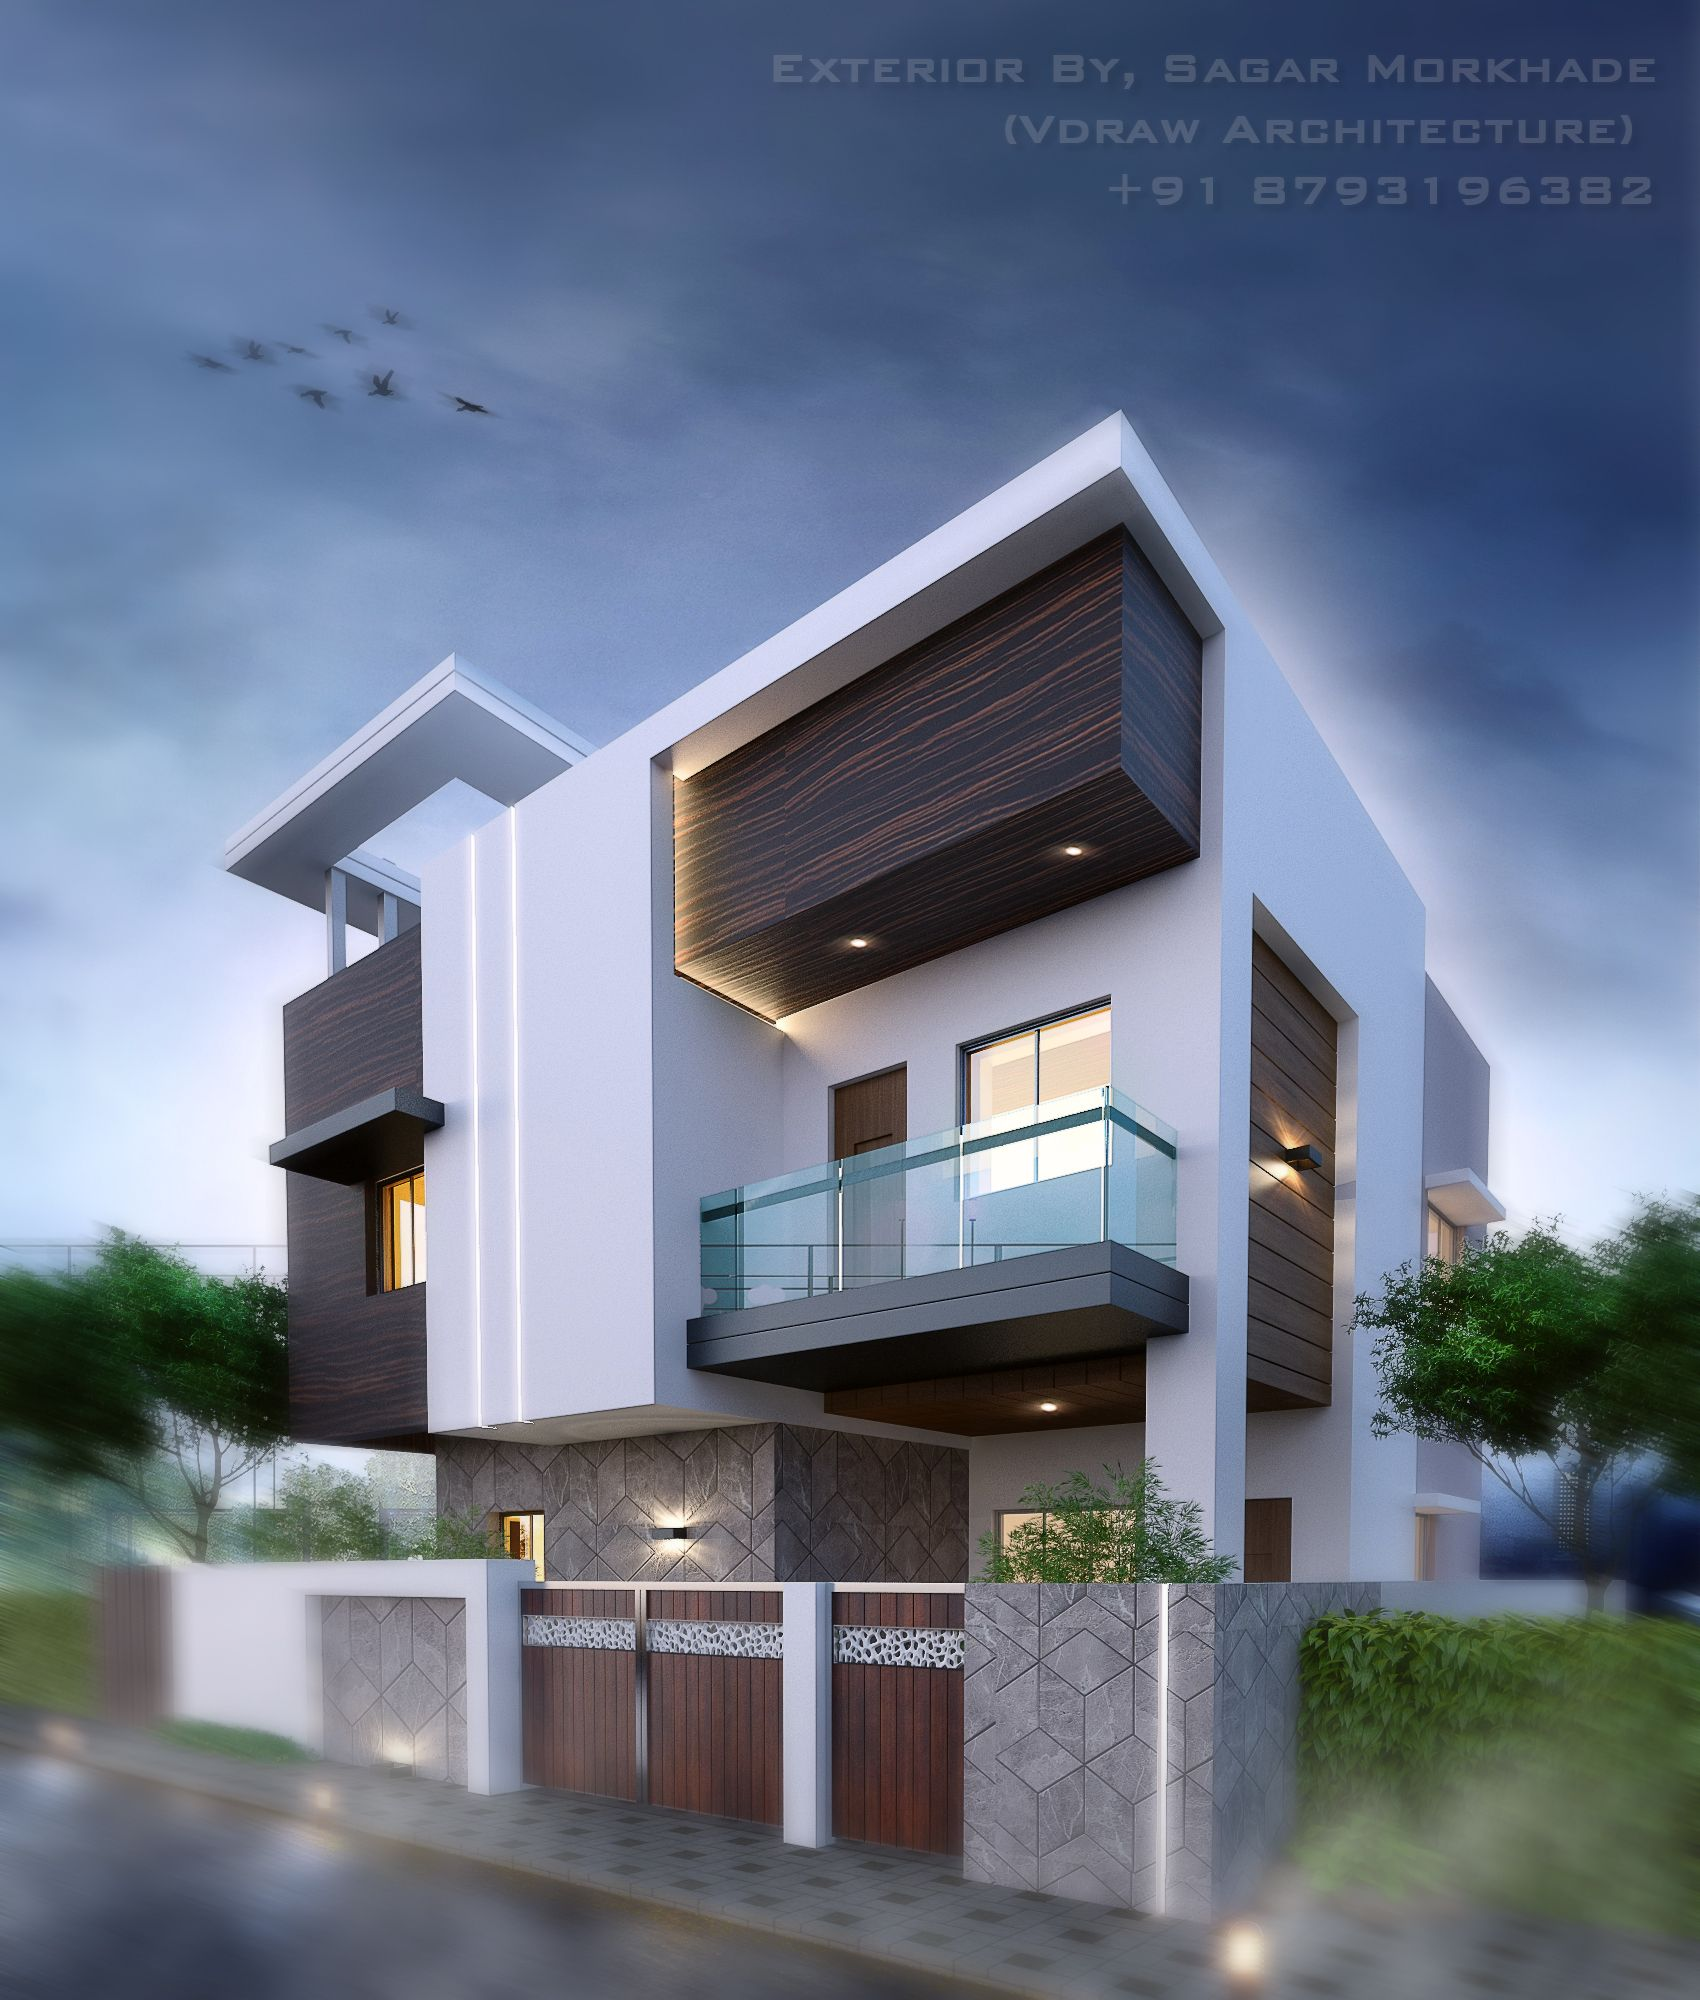 New Home Designs Latest Modern Interior Decoration: Modern Bungalow Exterior By, Sagar Morkhade (Vdraw